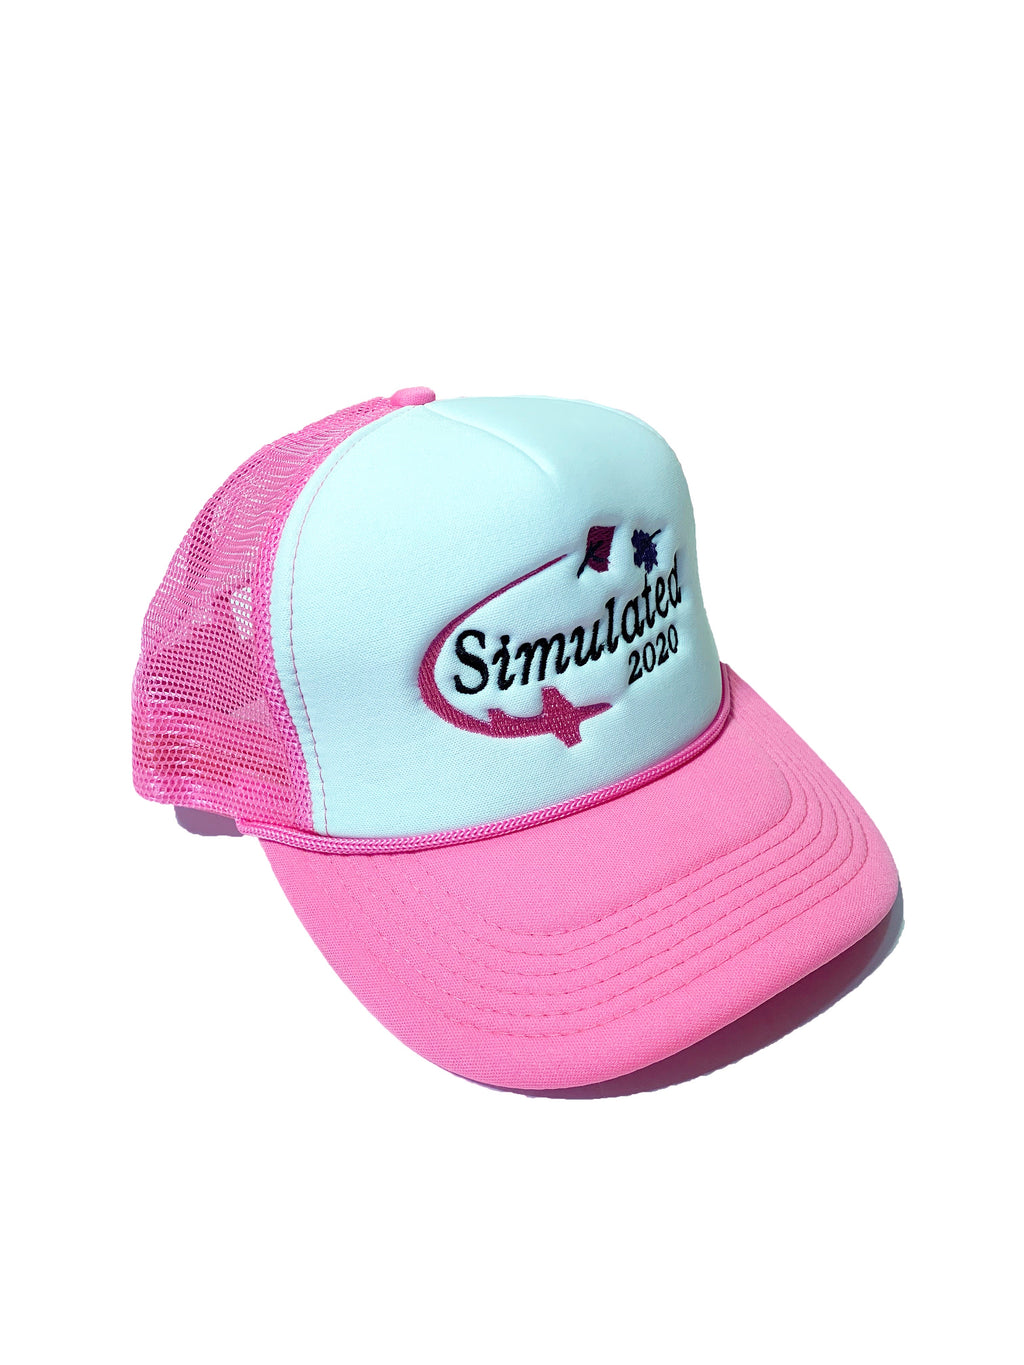 Simulated 2020 Trucker Hat Pink